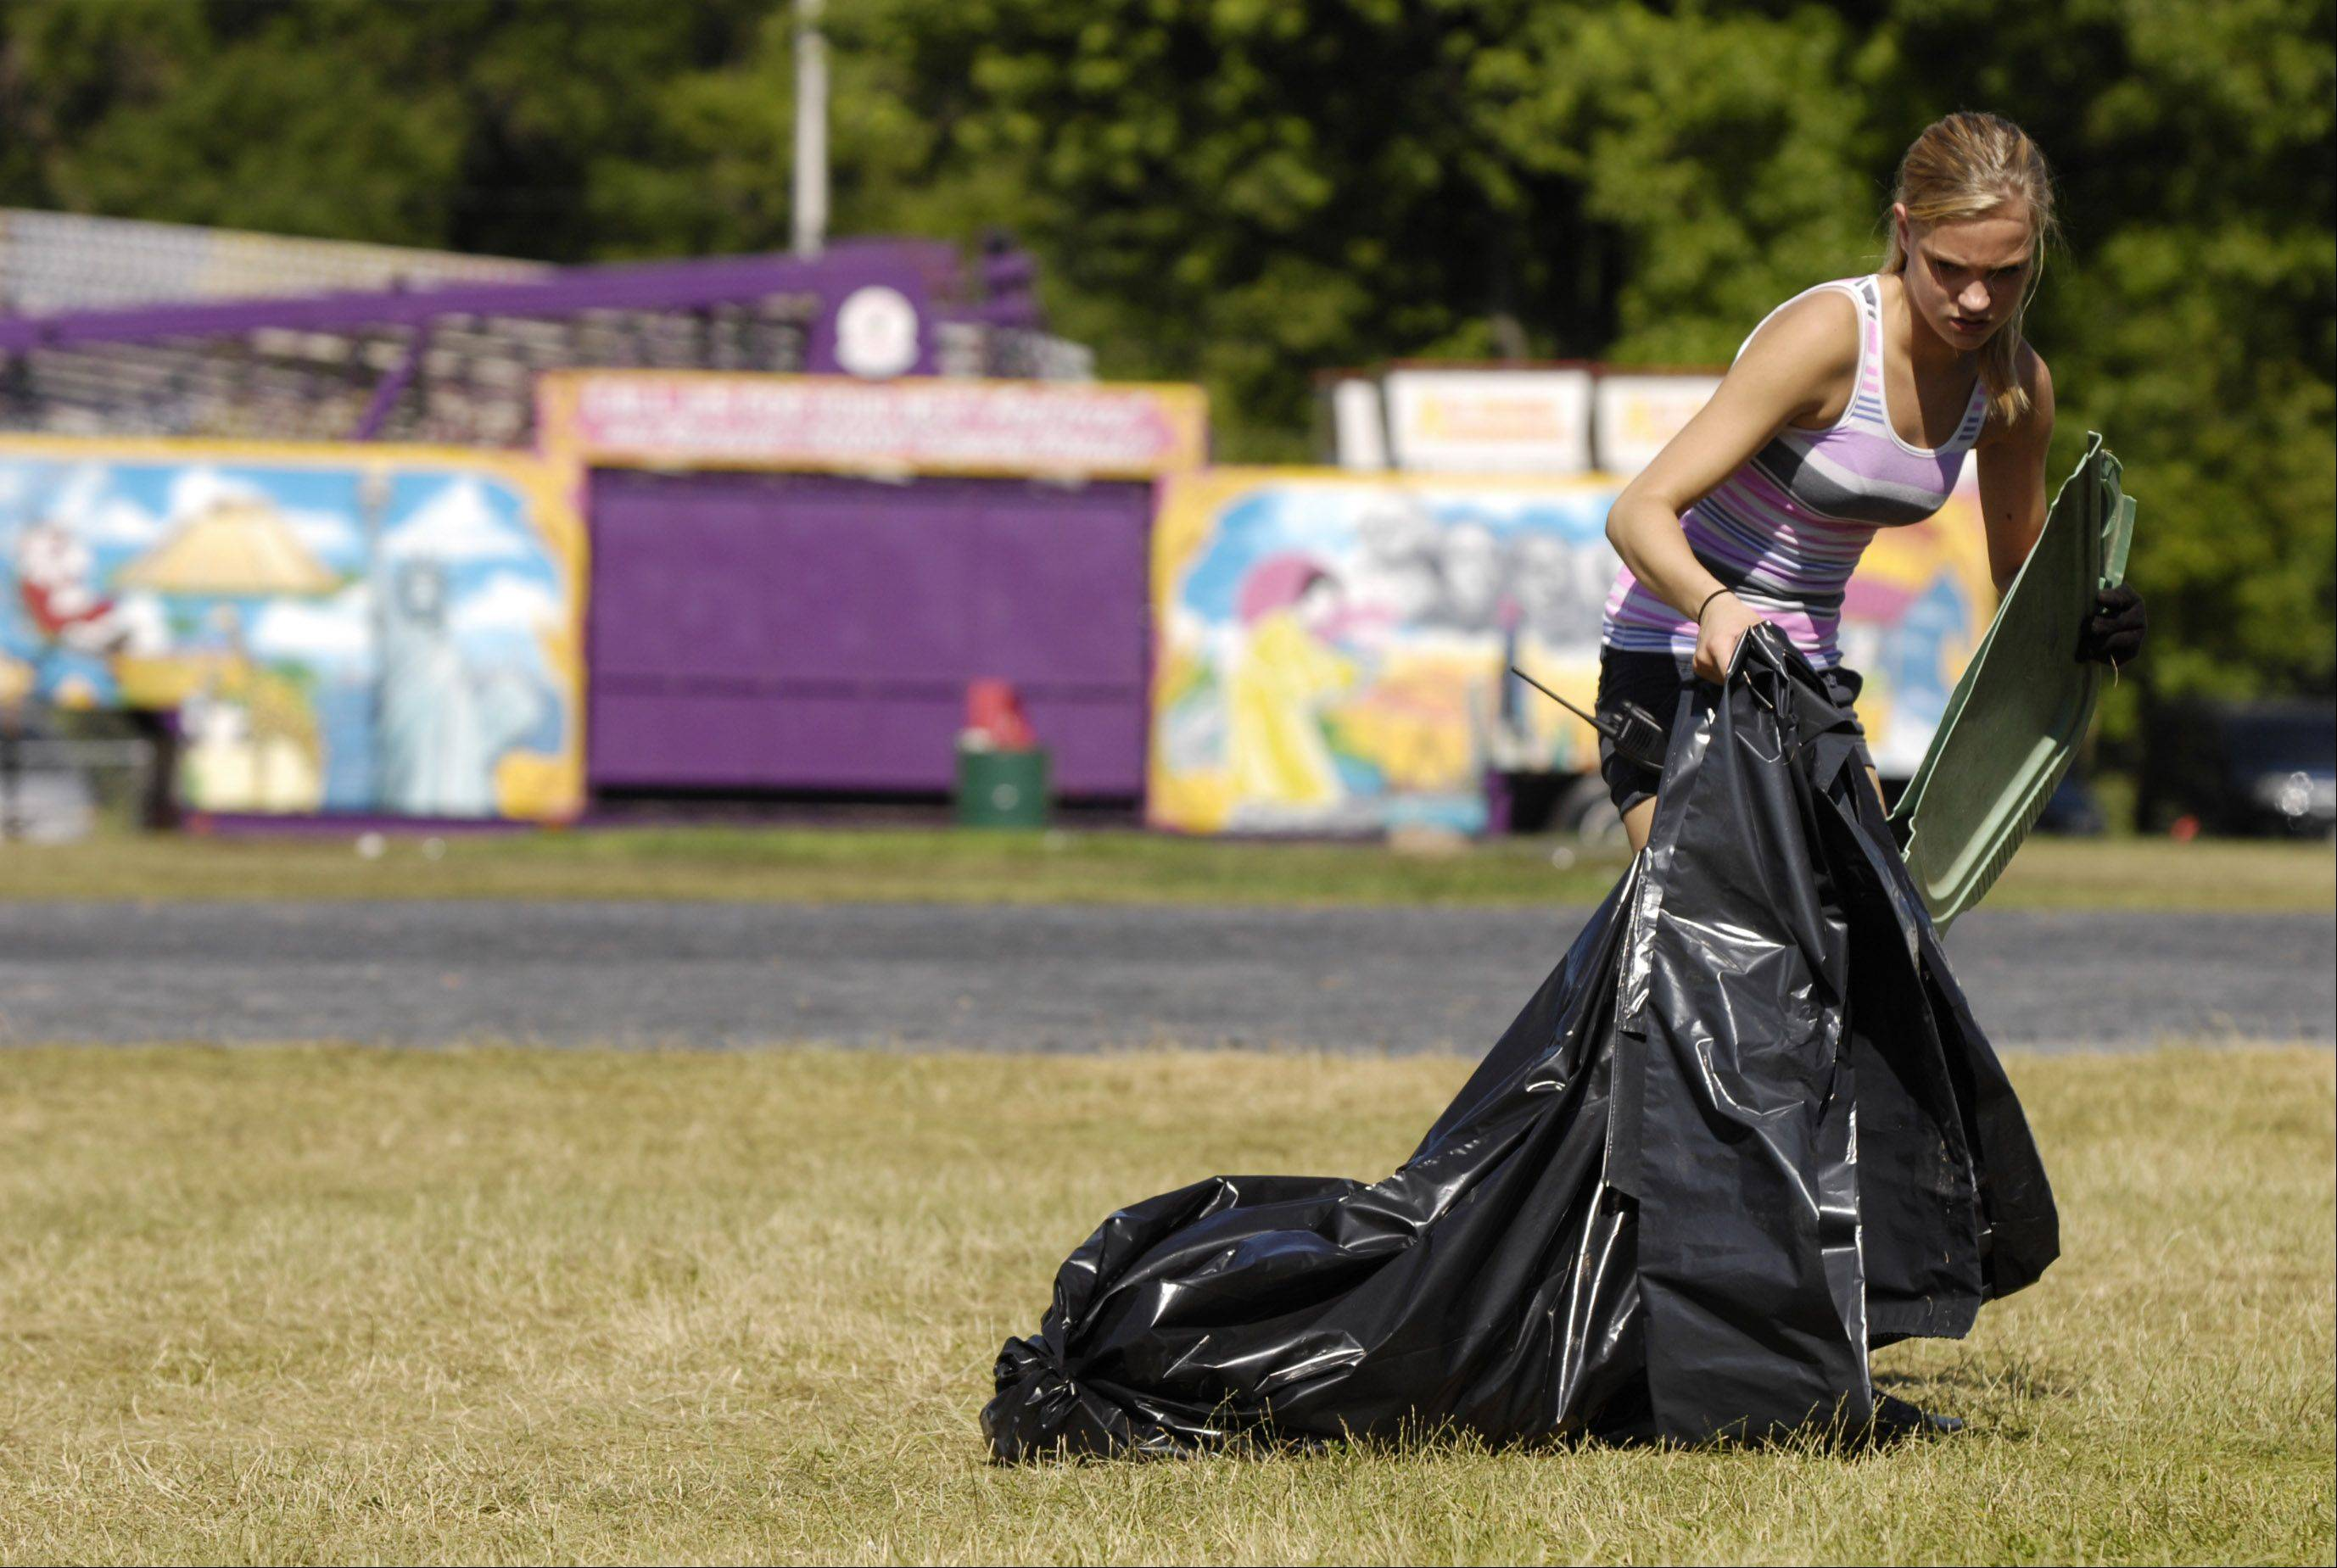 With this year's Ribfest in the history books, the task of cleaning up the grounds falls to people like Shelby Stephens of Naperville, who worked several days at the festival as part of the cleaning crew.